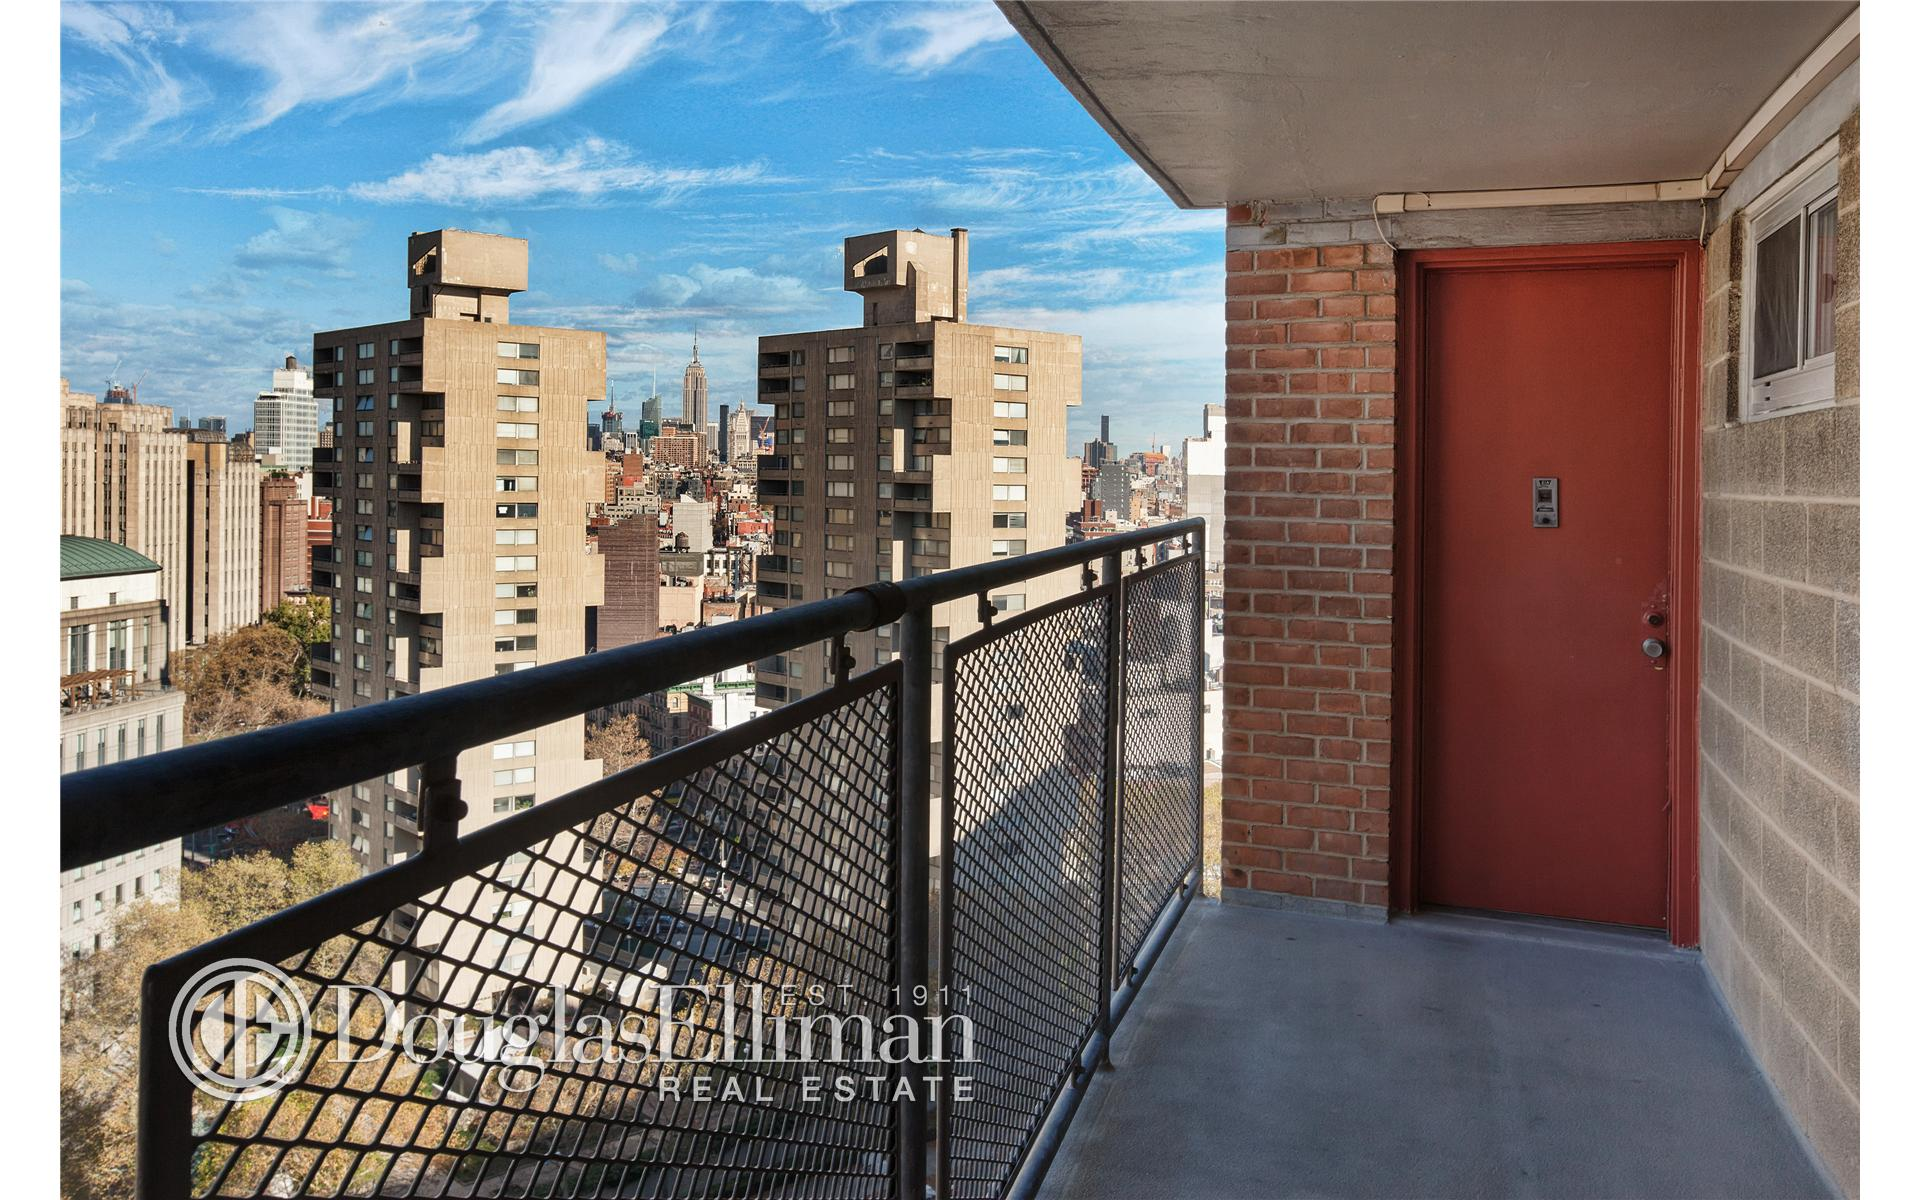 Co-op for Sale at Chatham Green, Chatham Green, 165 Park Row New York, New York 10038 United States